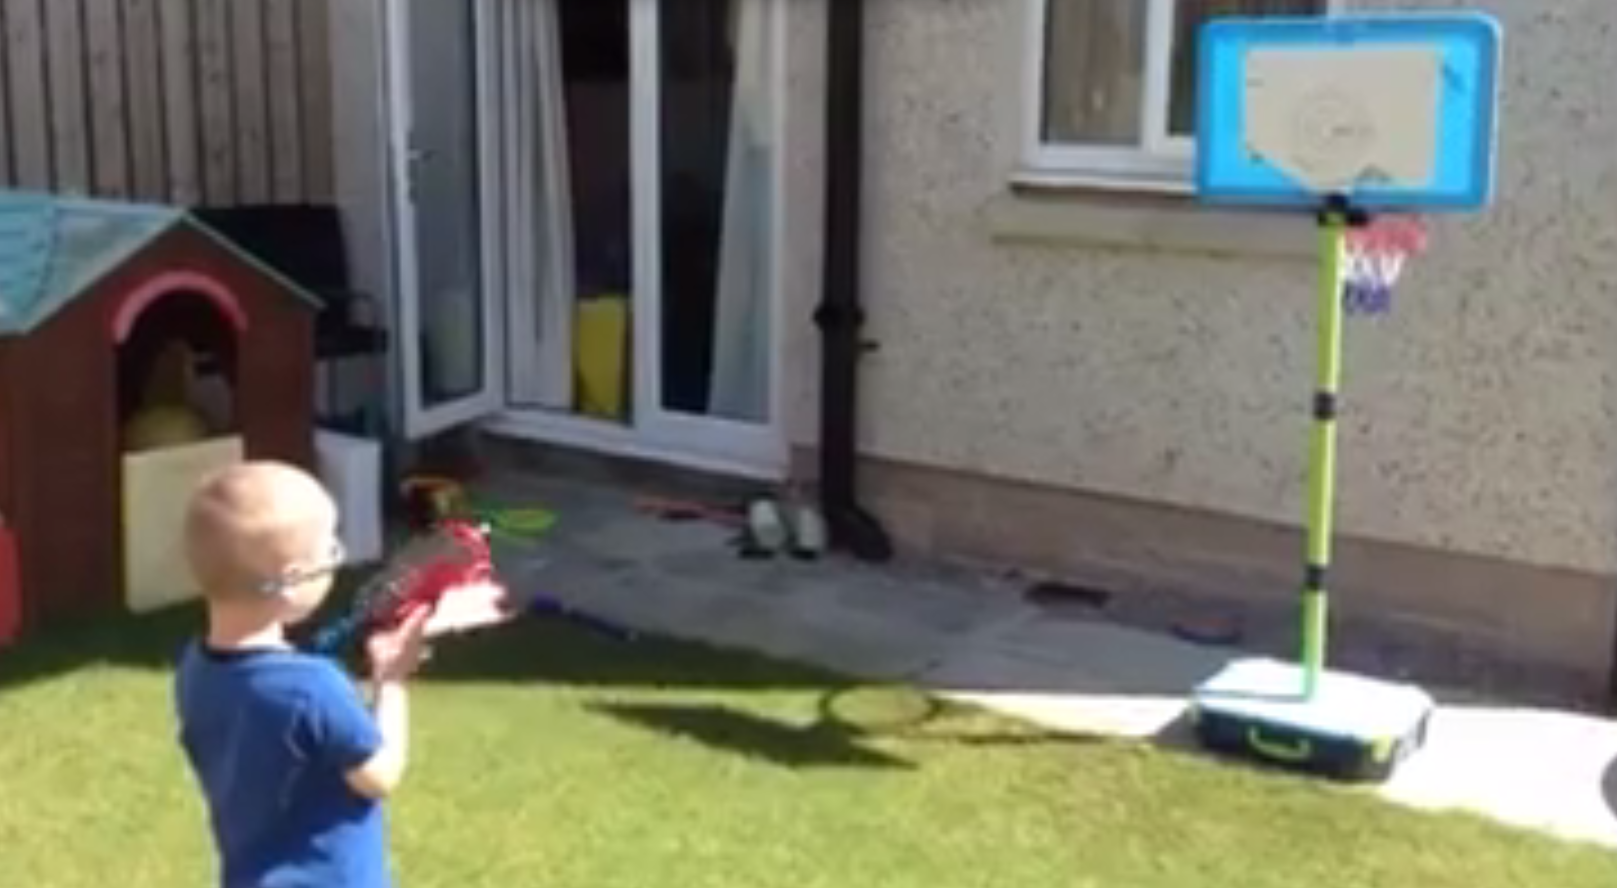 A future Team Scotland player thrives in target shooting